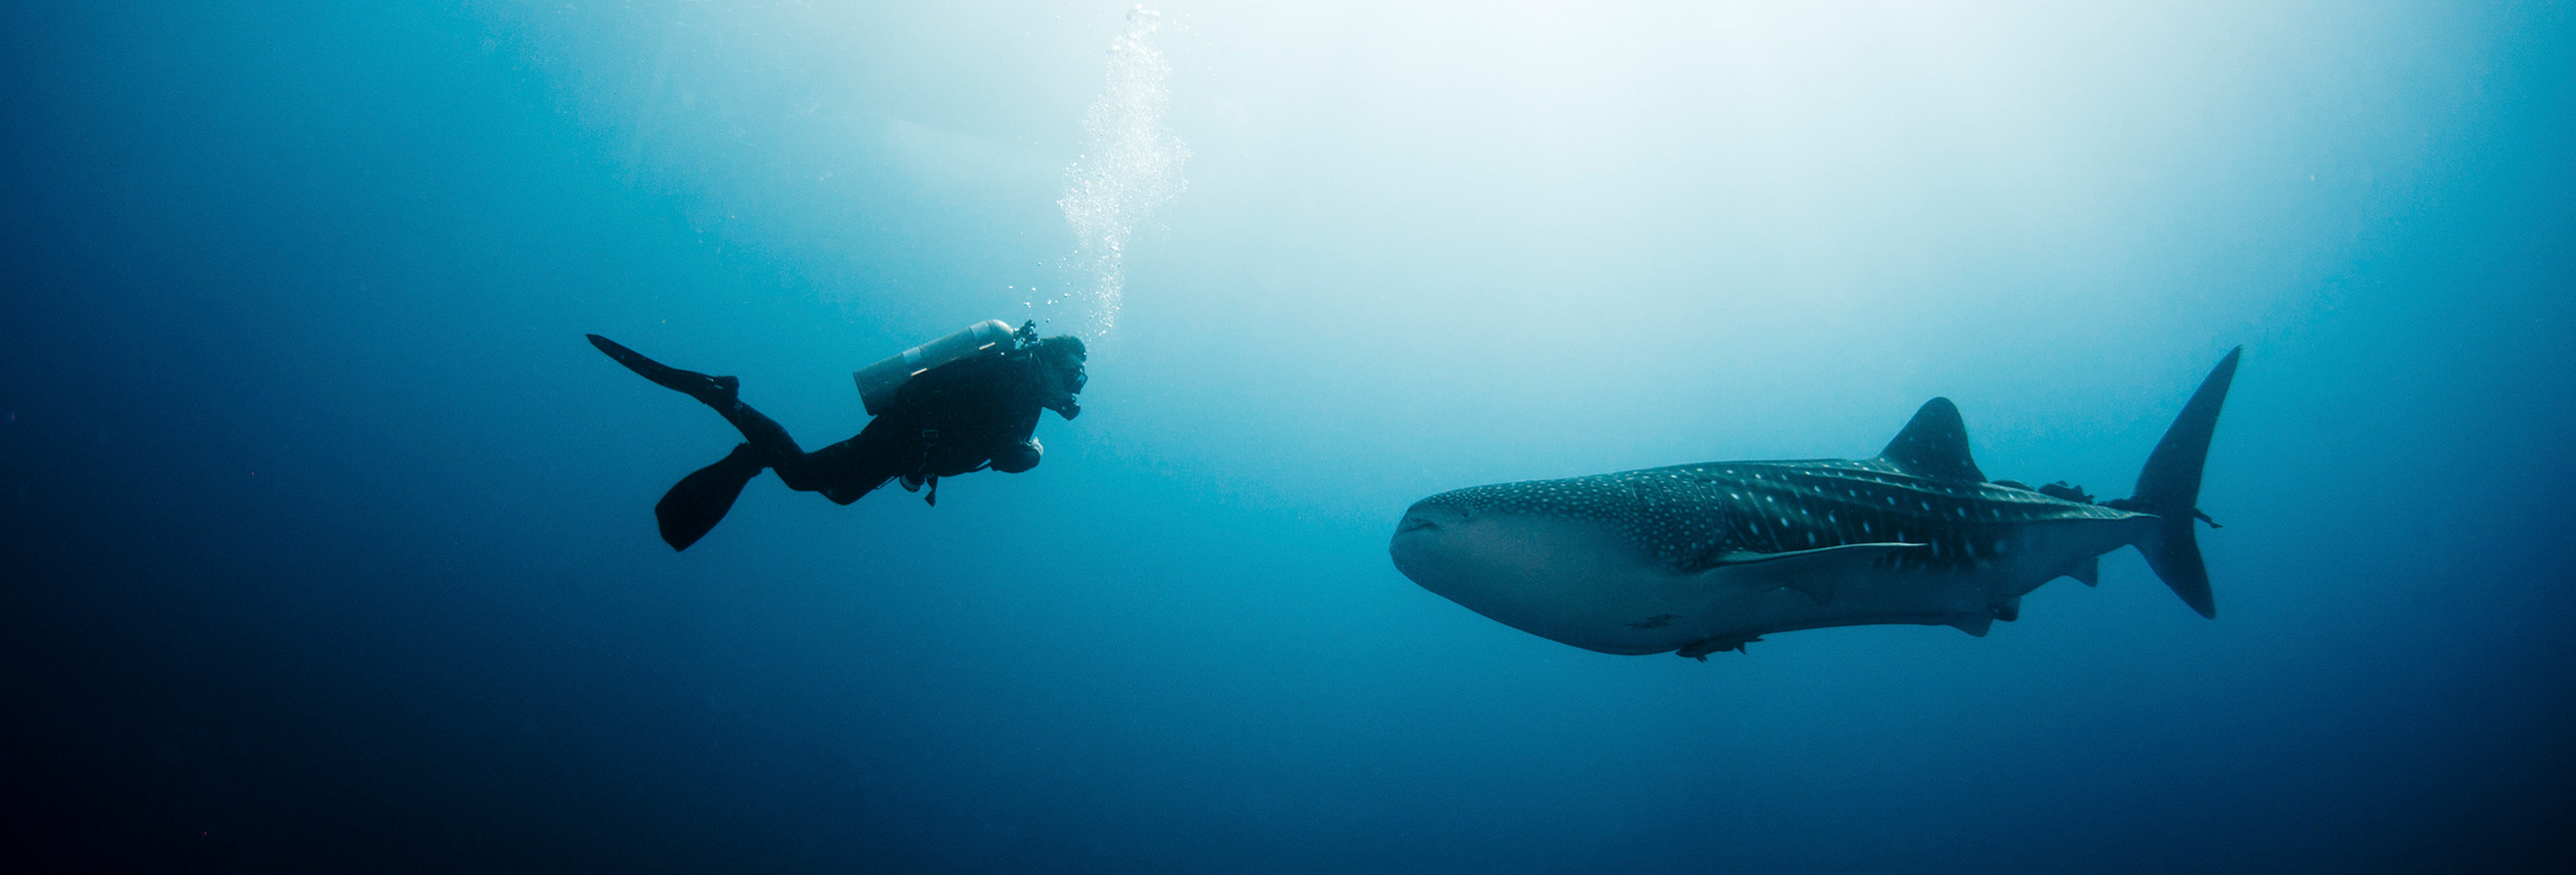 scuba diver and whale shark underwater